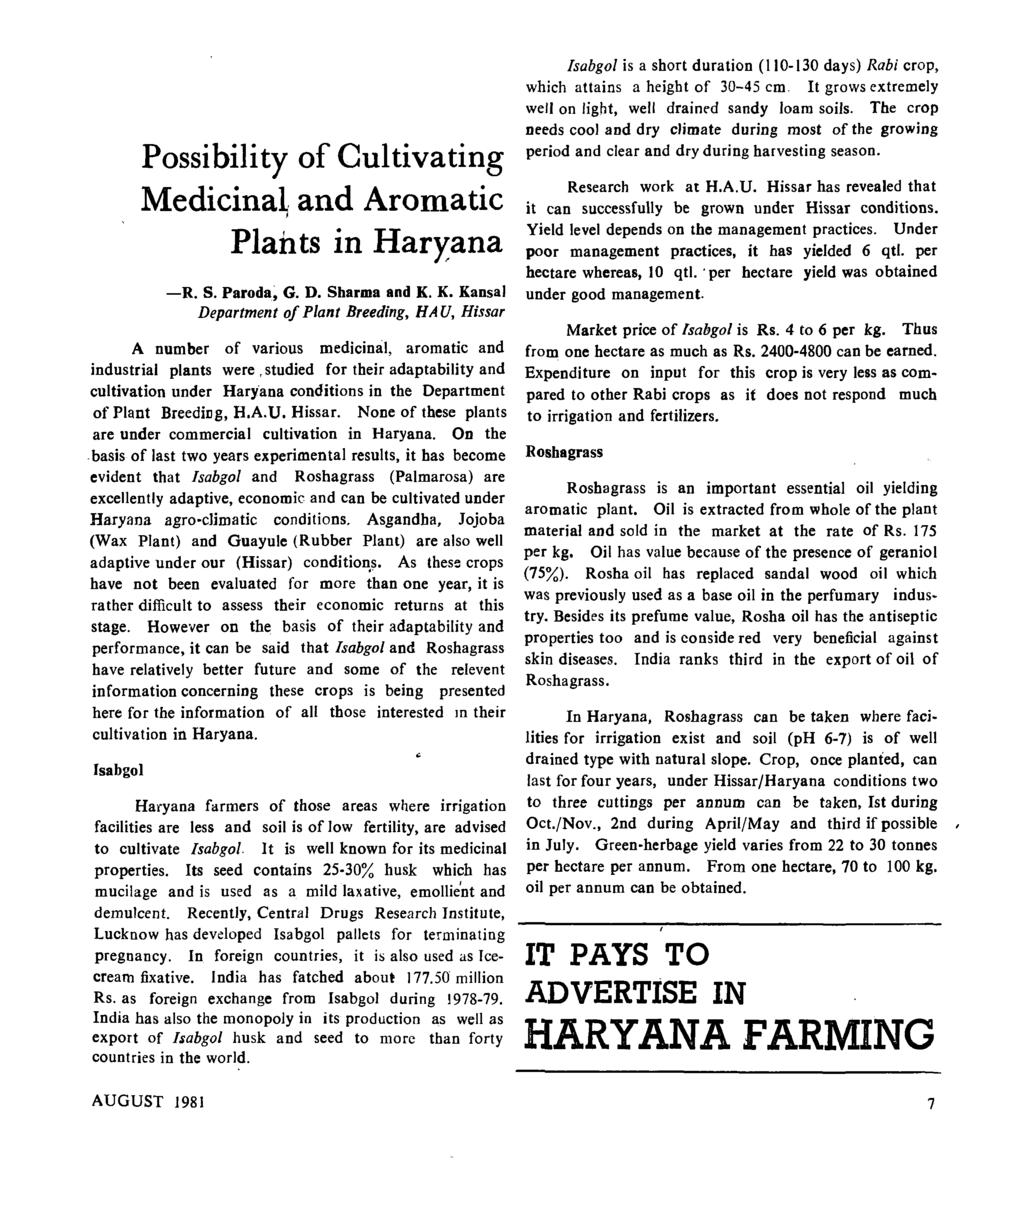 Possibility of Cultivating Medicinal, and Aromatic Plants in Haryana -R. S. Paroda~ G. D. Sharma and K.